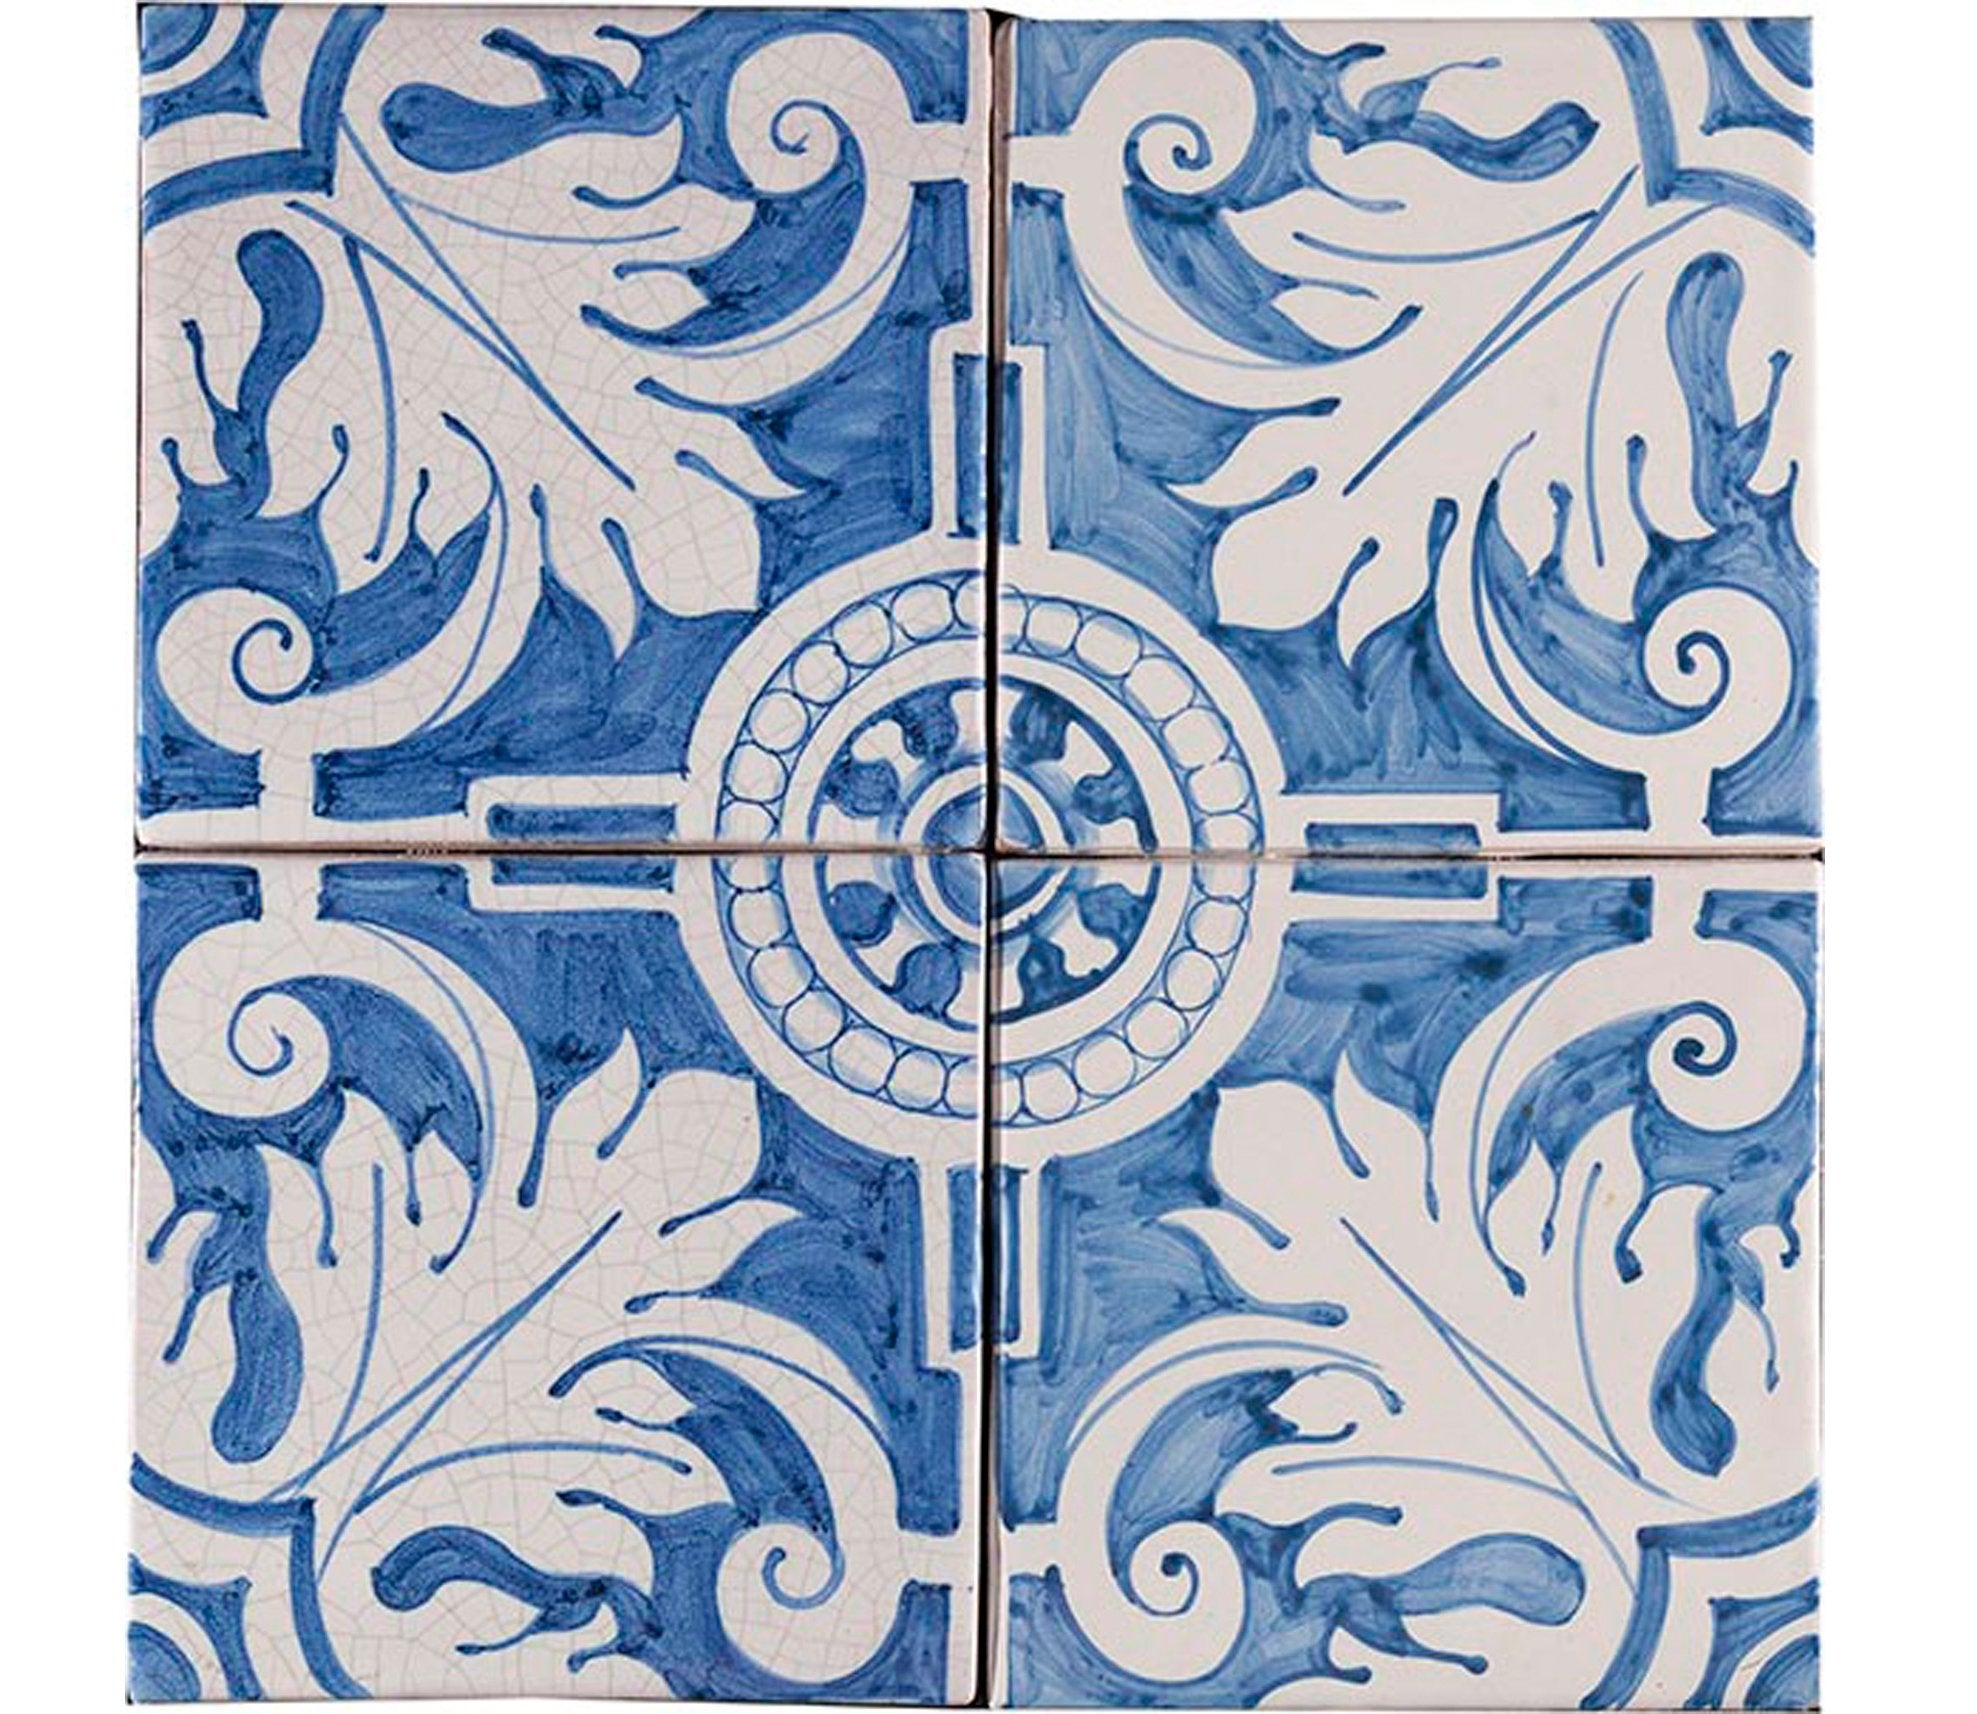 Series S Handpainted Tiles Product Image 5